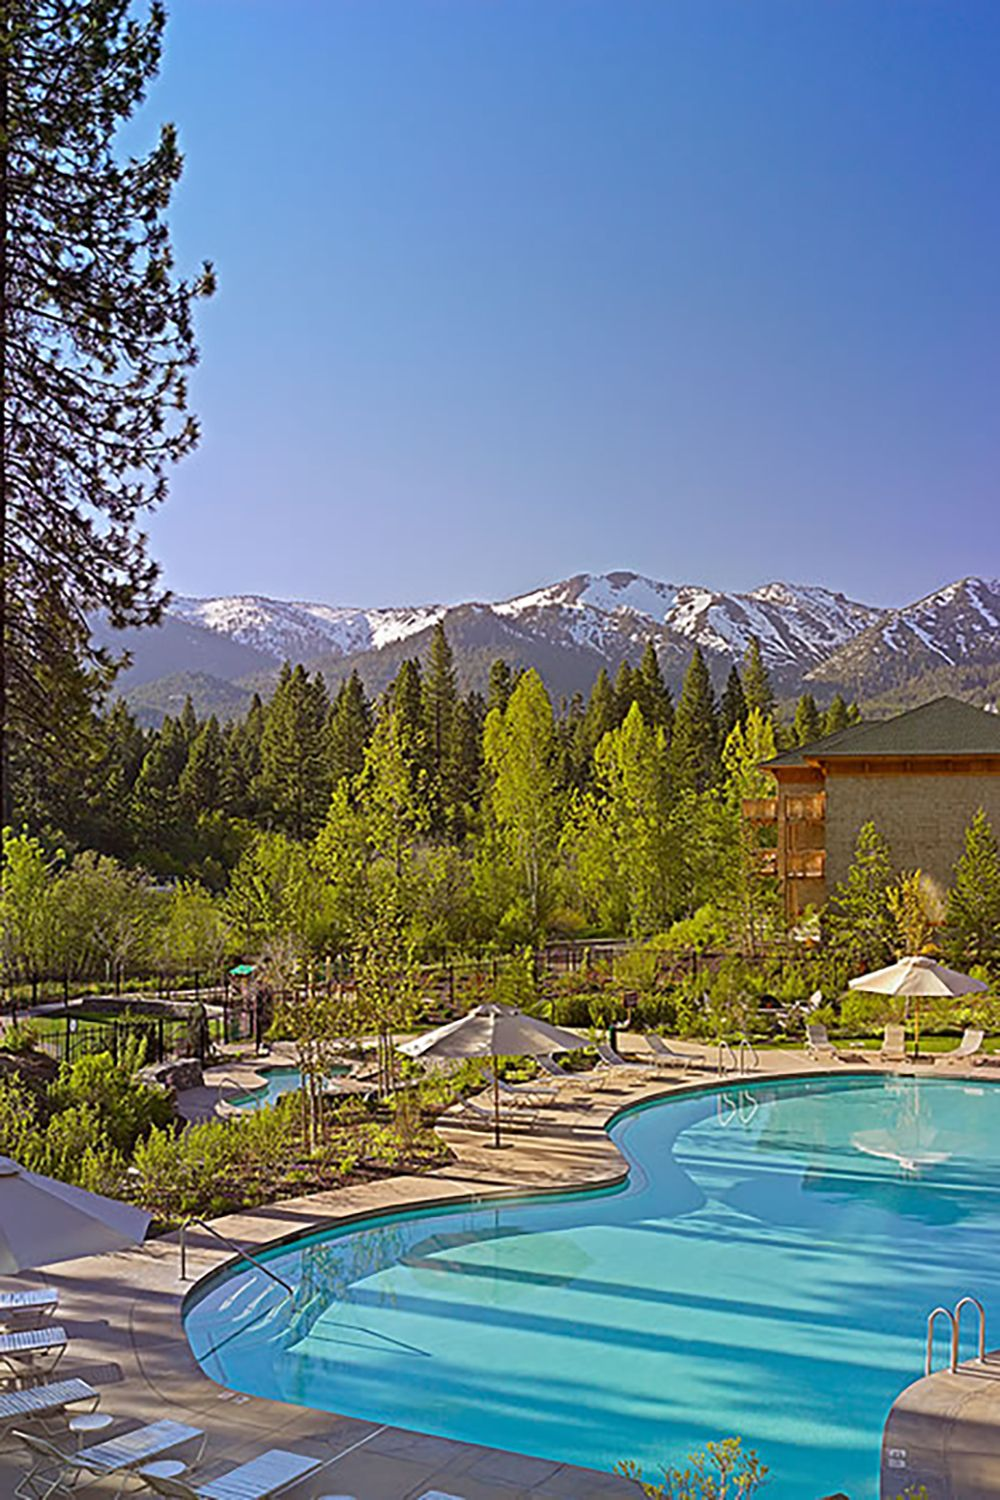 "<p>You'll want to maximize a spring skiing getaway with a little spa time, because there is nothing better than pampering yourself *while also being outdoors in nature*. (Hello, mountain views.) At <a href=""https://laketahoe.regency.hyatt.com/en/hotel/activities/hotel-activities/spa.html"">Stillwater Spa</a>, you can enjoy all that and aprè<span class=""redactor-invisible-space""></span><span class=""redactor-invisible-space""></span>s-ski specific treatments like a 50-minute boot relief or reflexology treatment, a Moroccanoil Hydration and Exfoliation ritual (it's important to keep well hydrated during and after a day on the slopes), or a deep tissue massage. <span data-redactor-tag=""span"" data-verified=""redactor""></span></p>"